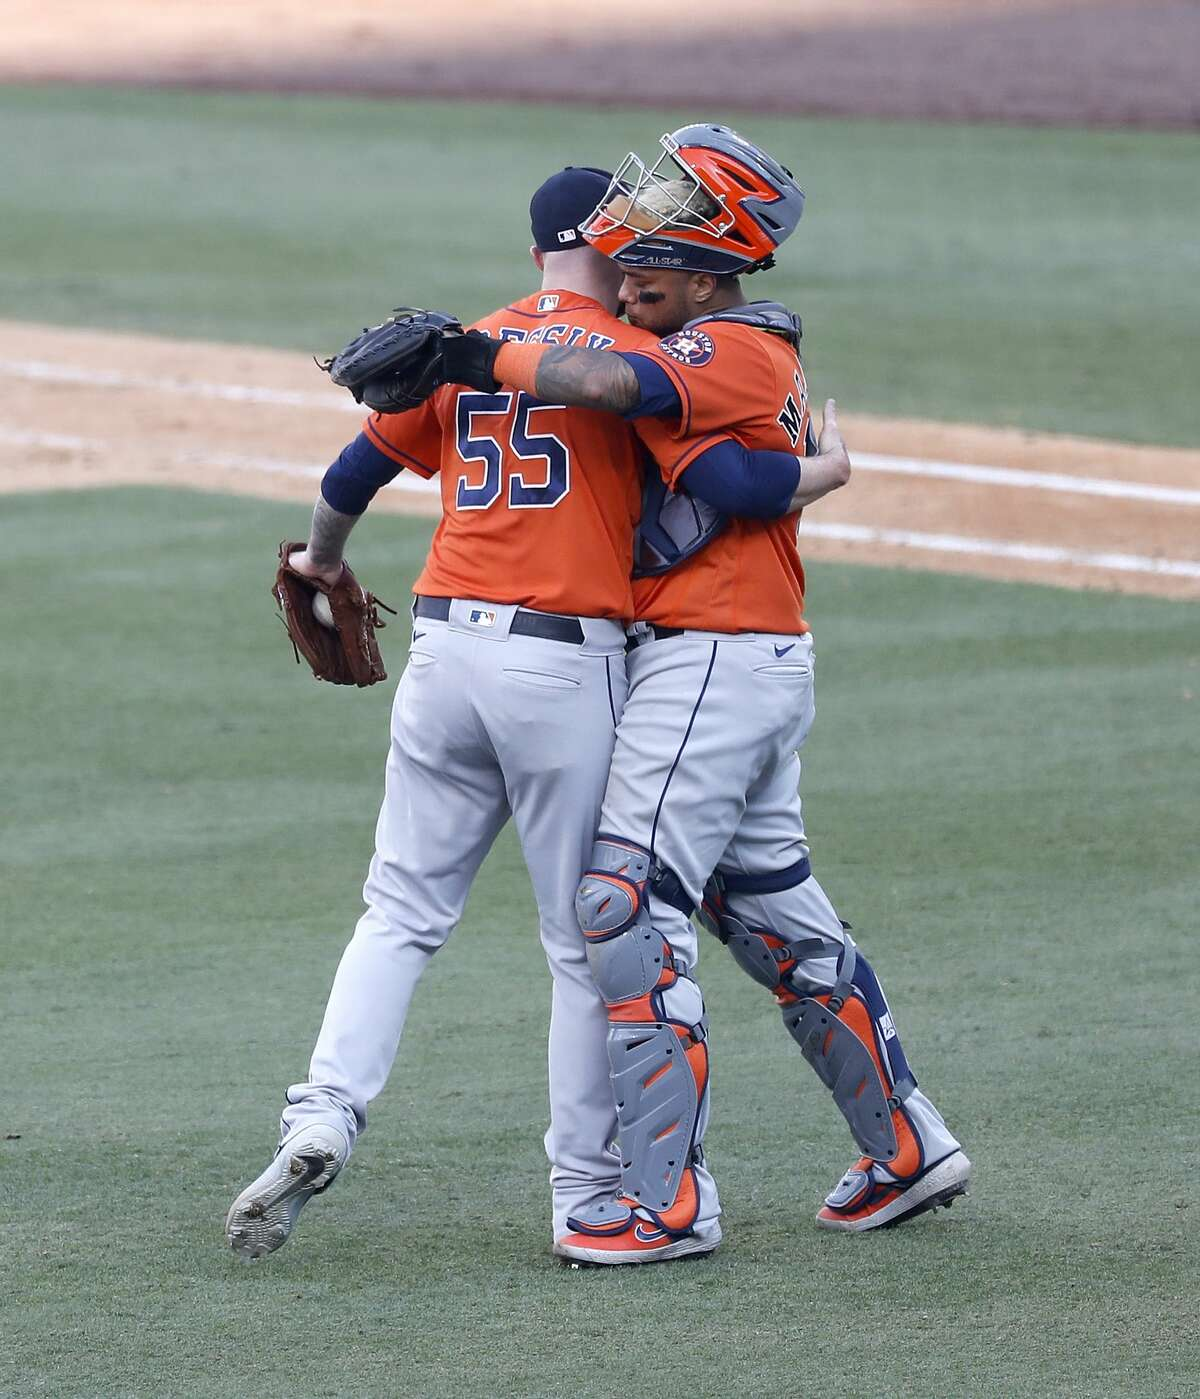 Houston Astros relief pitcher Ryan Pressly (55) hugs catcher Martin Maldonado (15) after Oakland Athletics Sean Murphy struck out swinging to end Game 1 of the American League Division Series, Monday, October 5, 2020, in Los Angeles, at Dodger Stadium. Astros won the game 10-5.